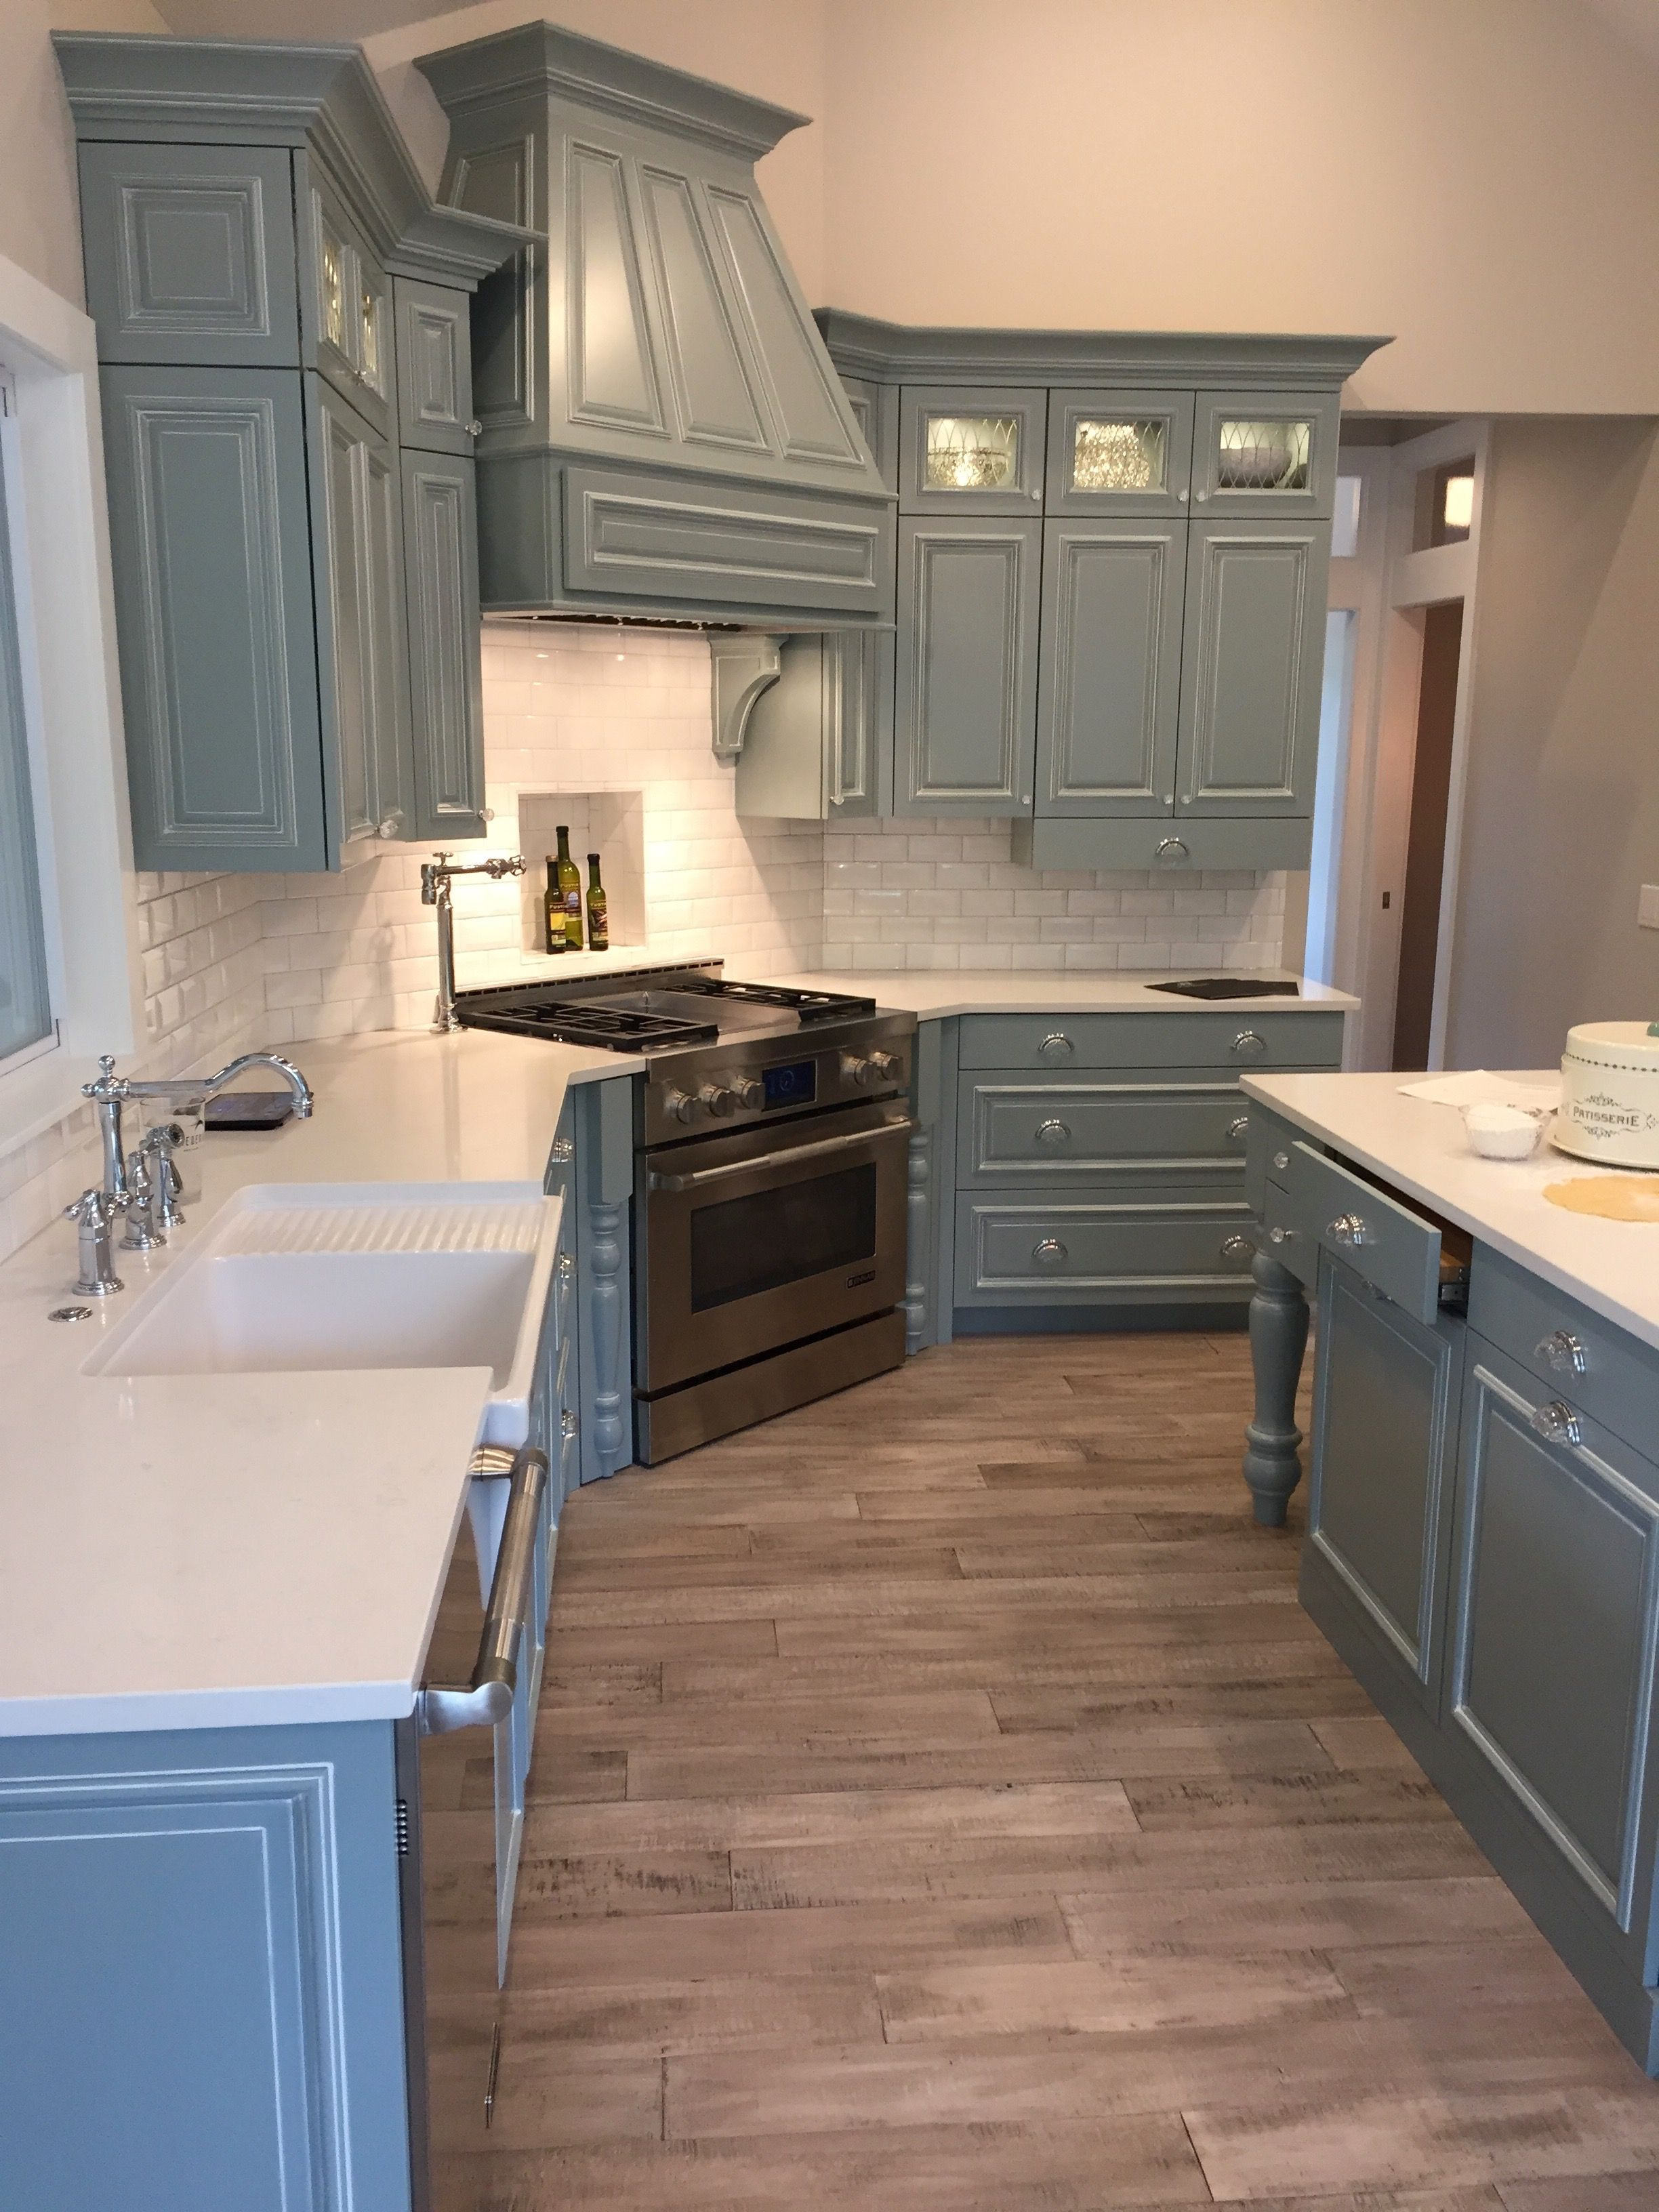 Painted custom cabinetry in Benjamin Moore Mount Saint